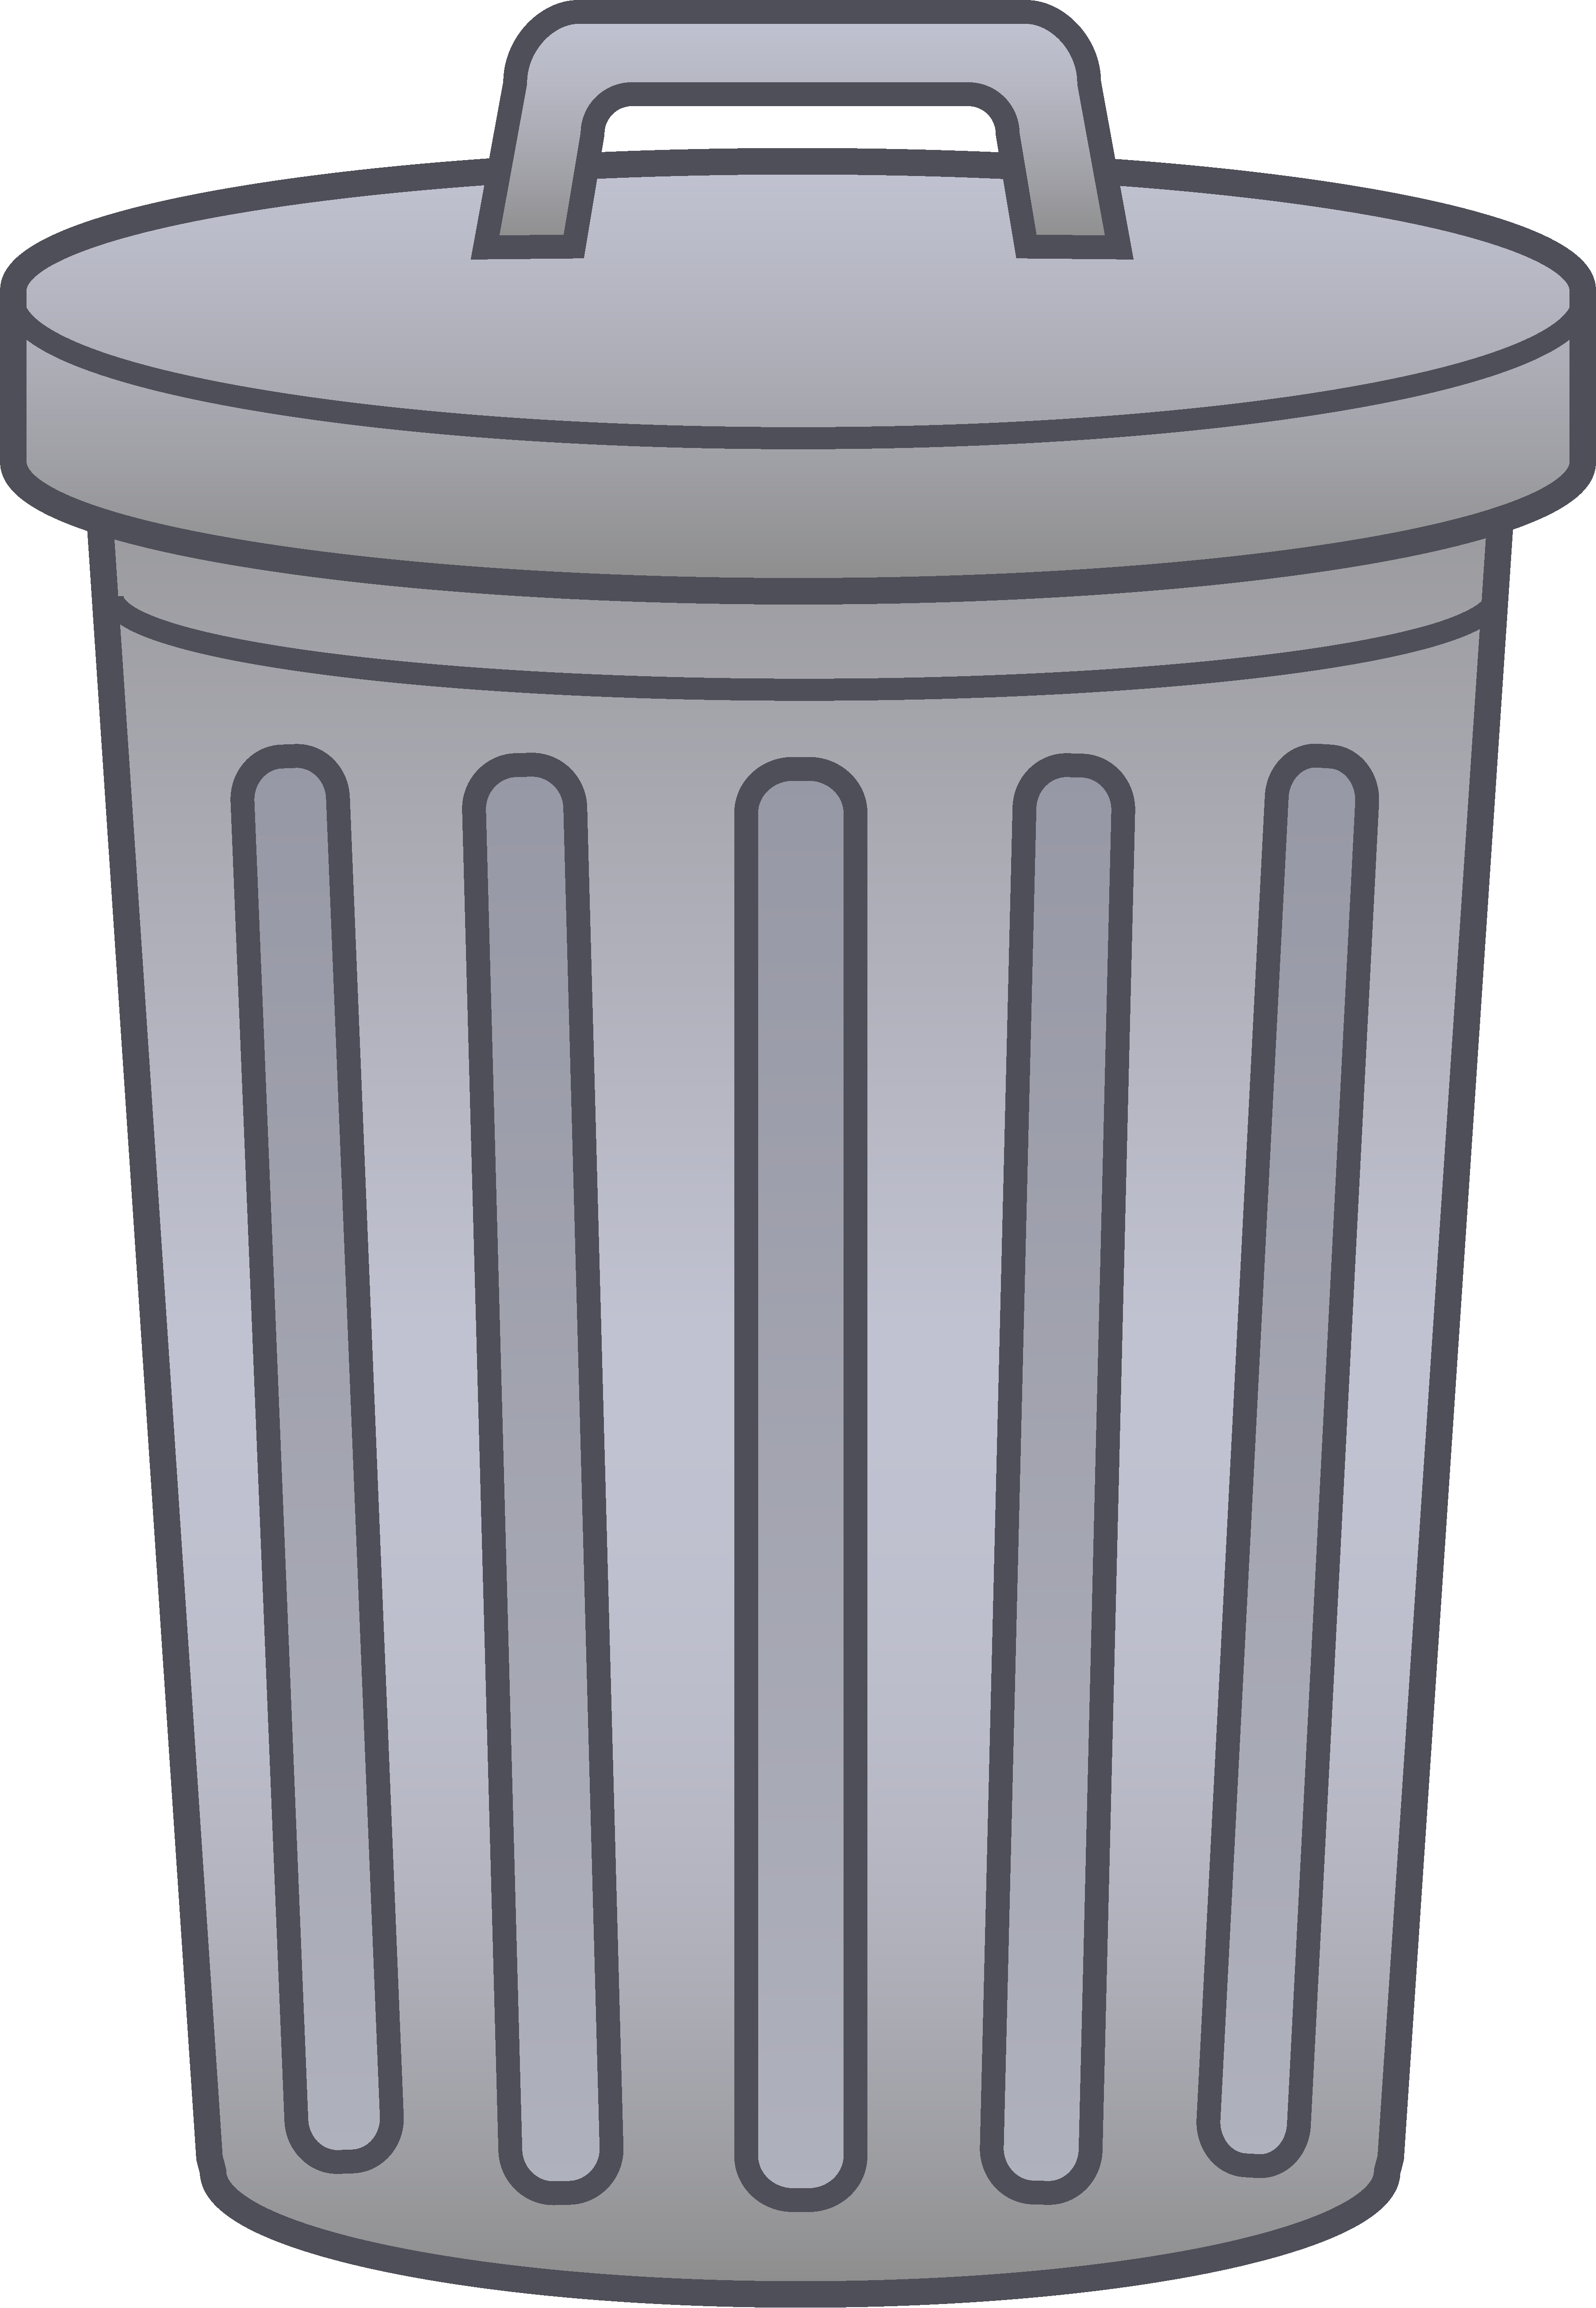 clip freeuse download Trashcan clipart. Trash can clip art